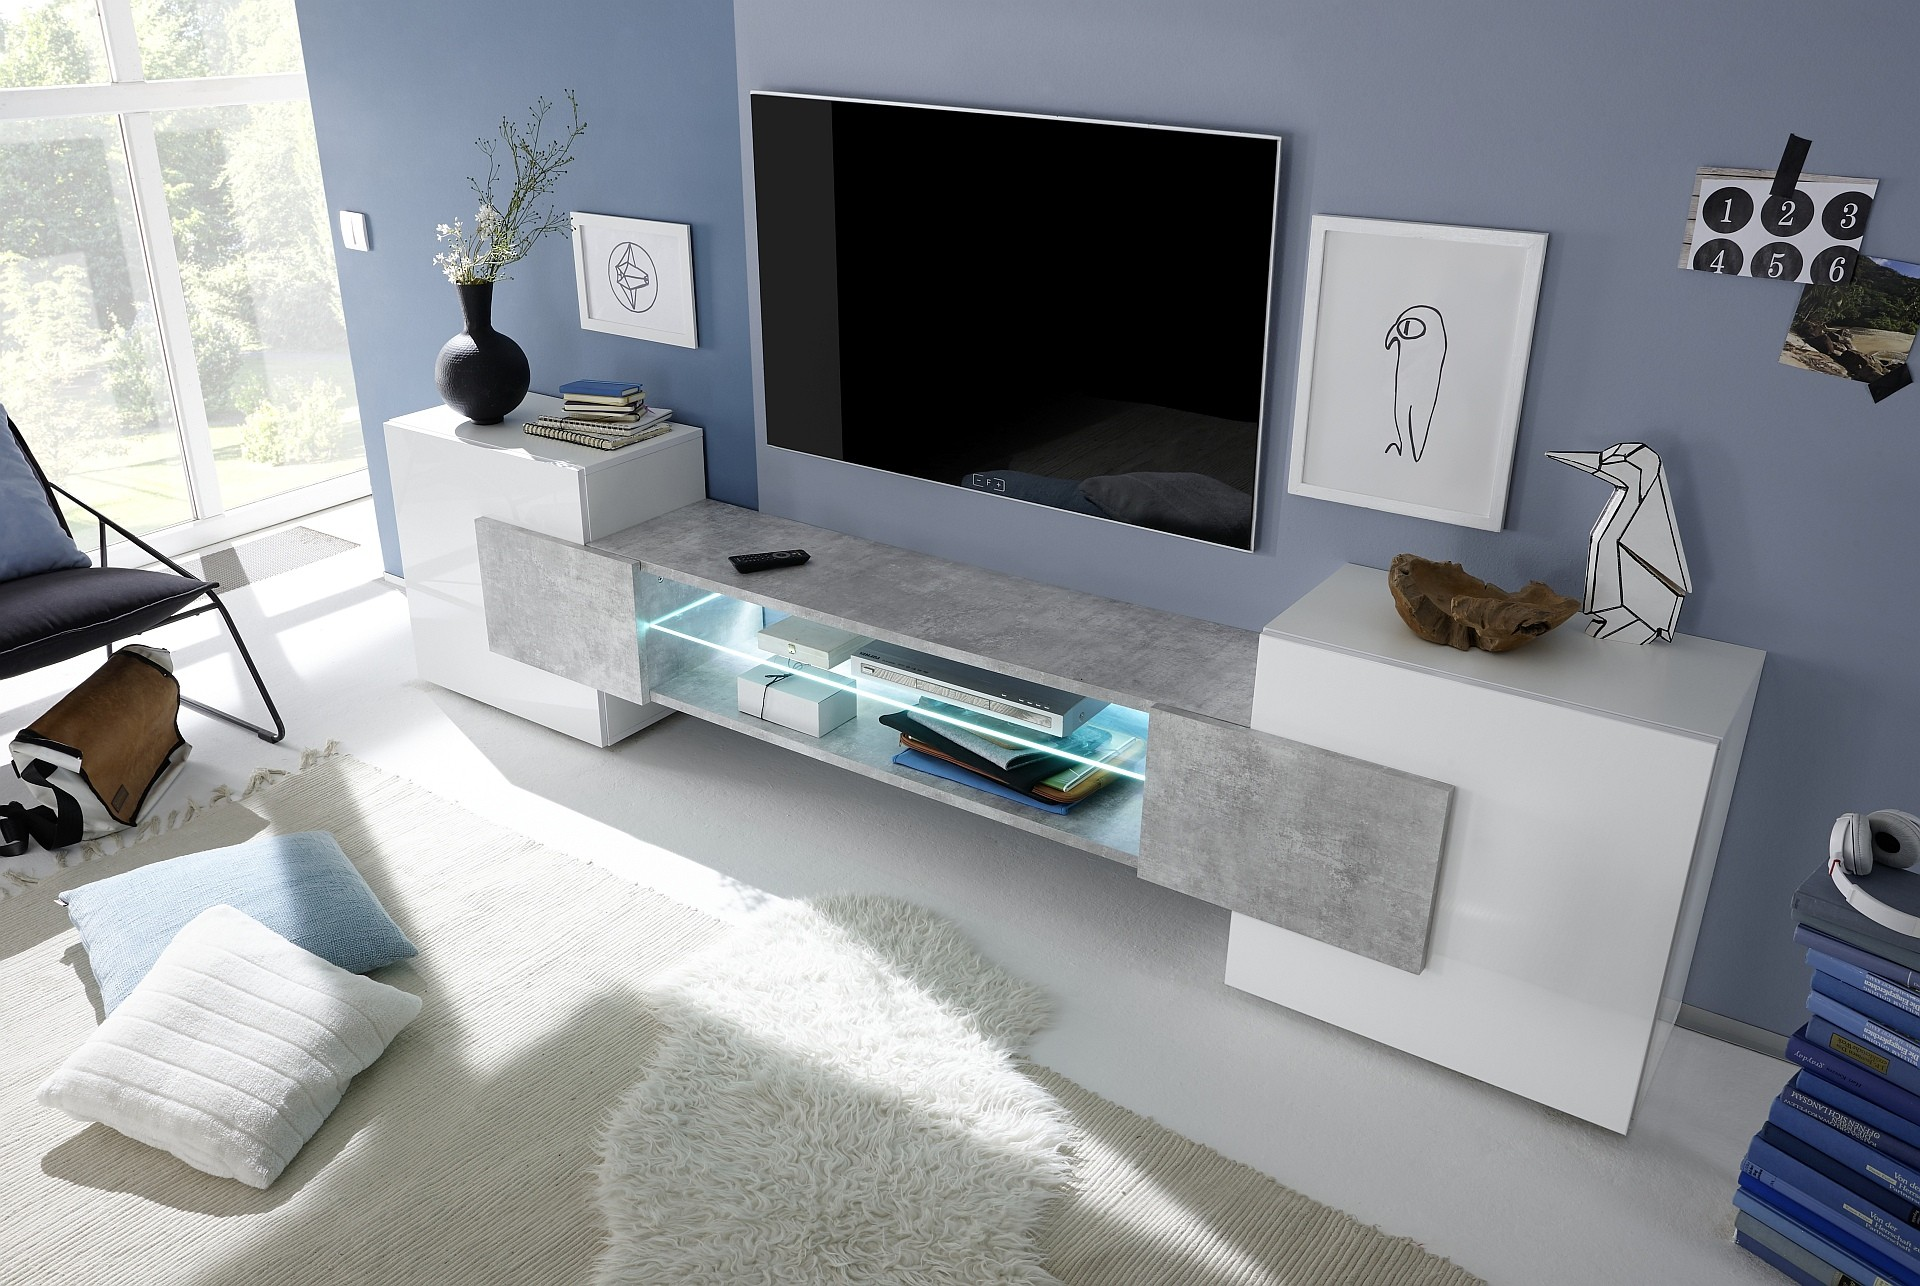 Incastro Iv Modern Tv Wall Set In White And Stone Imitation  # Meuble Tv Stone